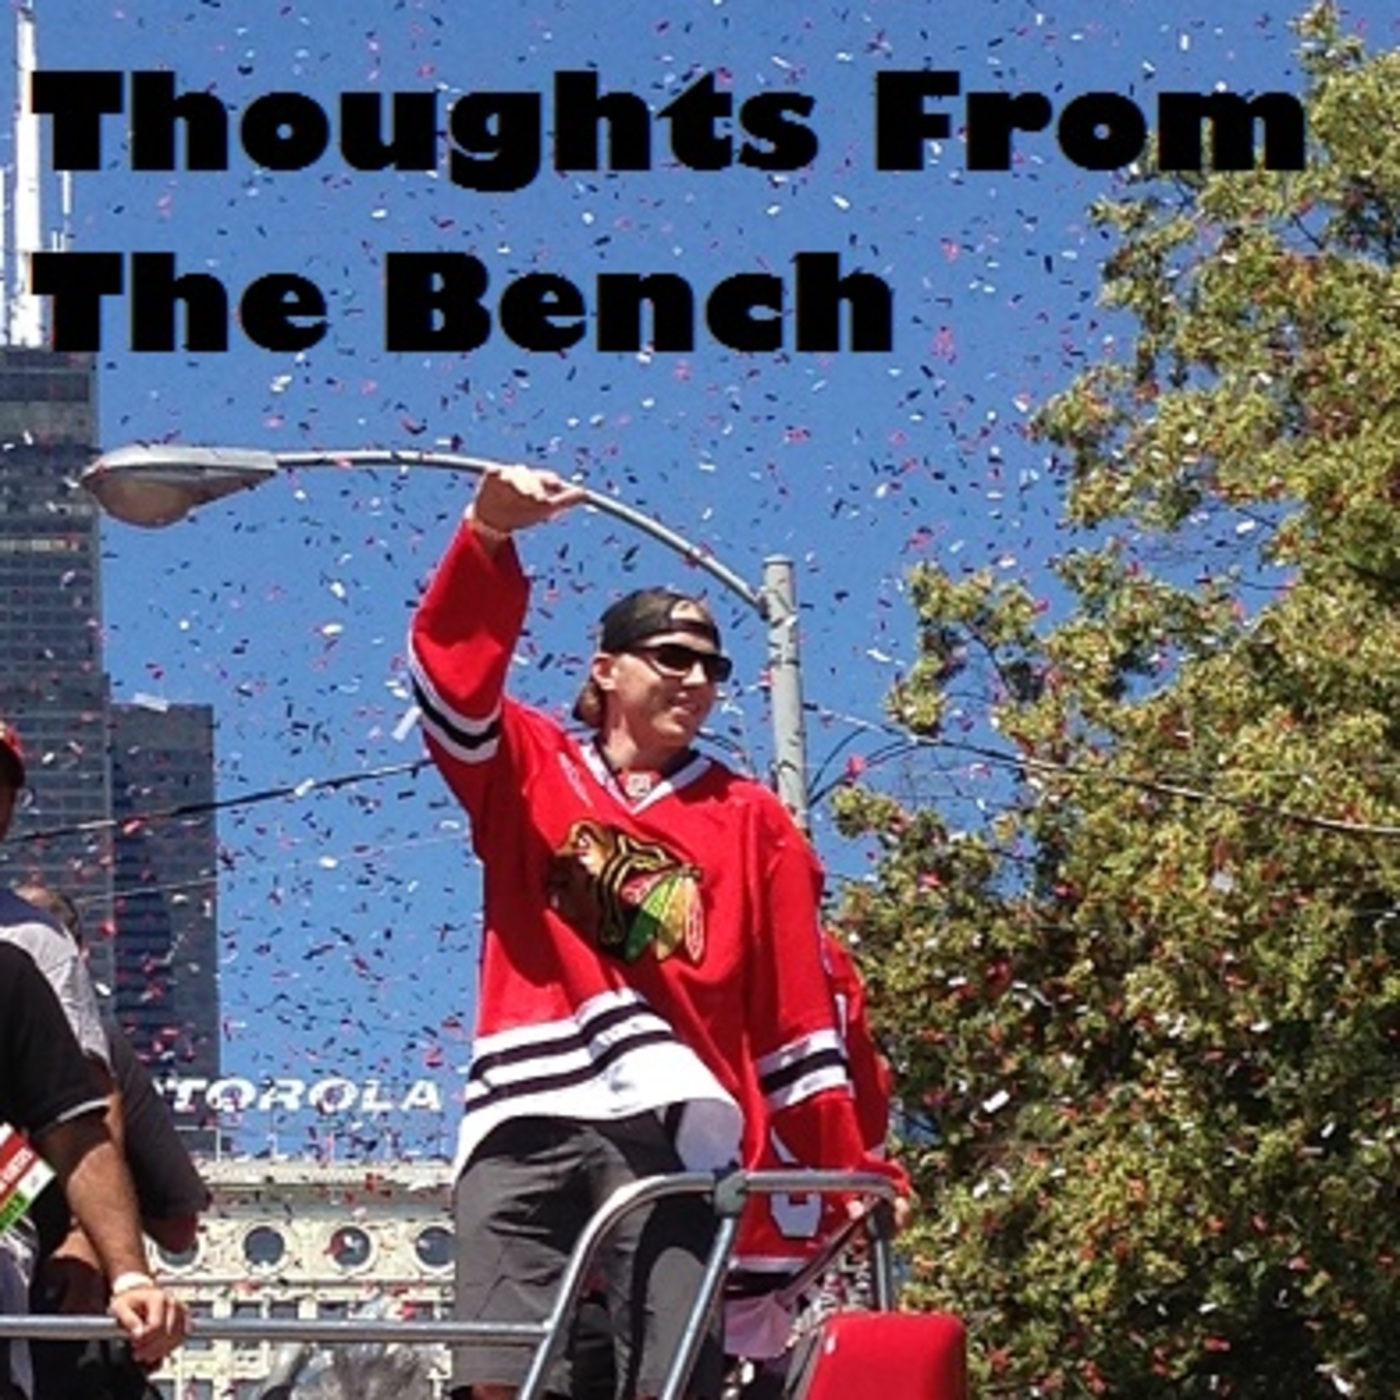 Thoughts From The Bench